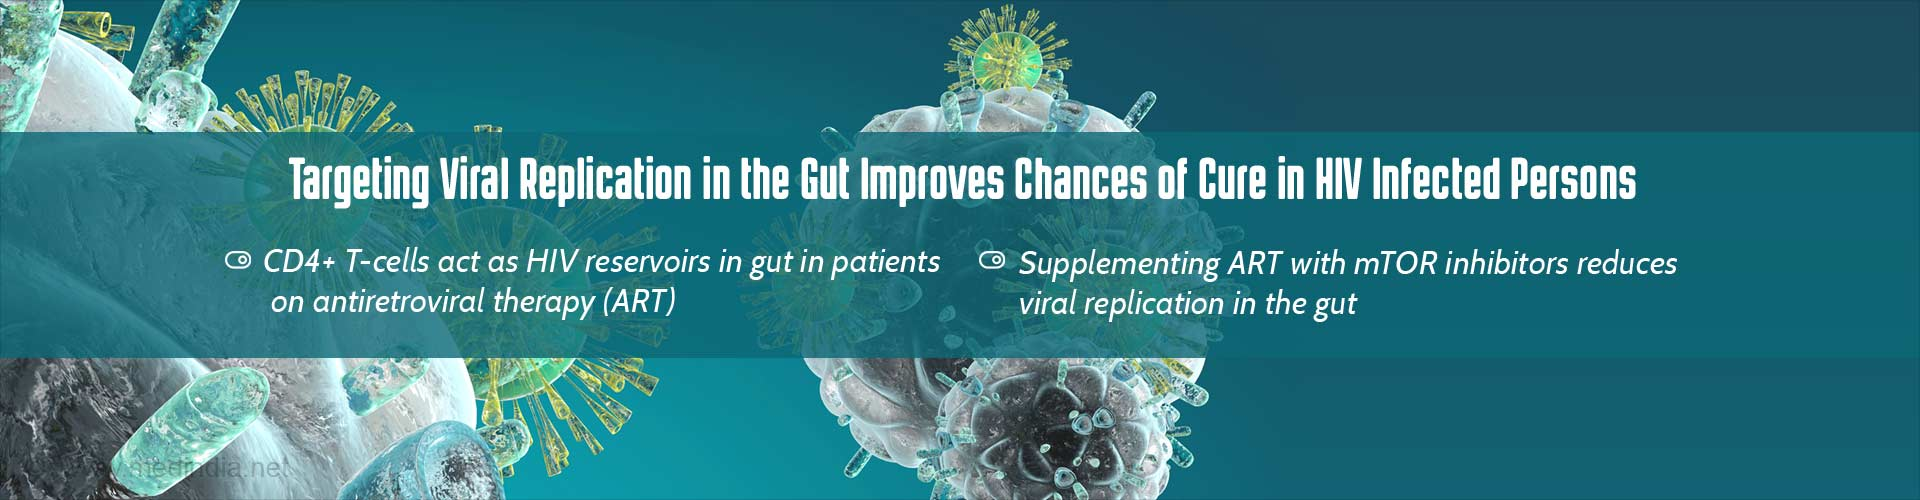 HIV-AIDS Infection- Novel Therapy Reduces Viral Replication In The Gut